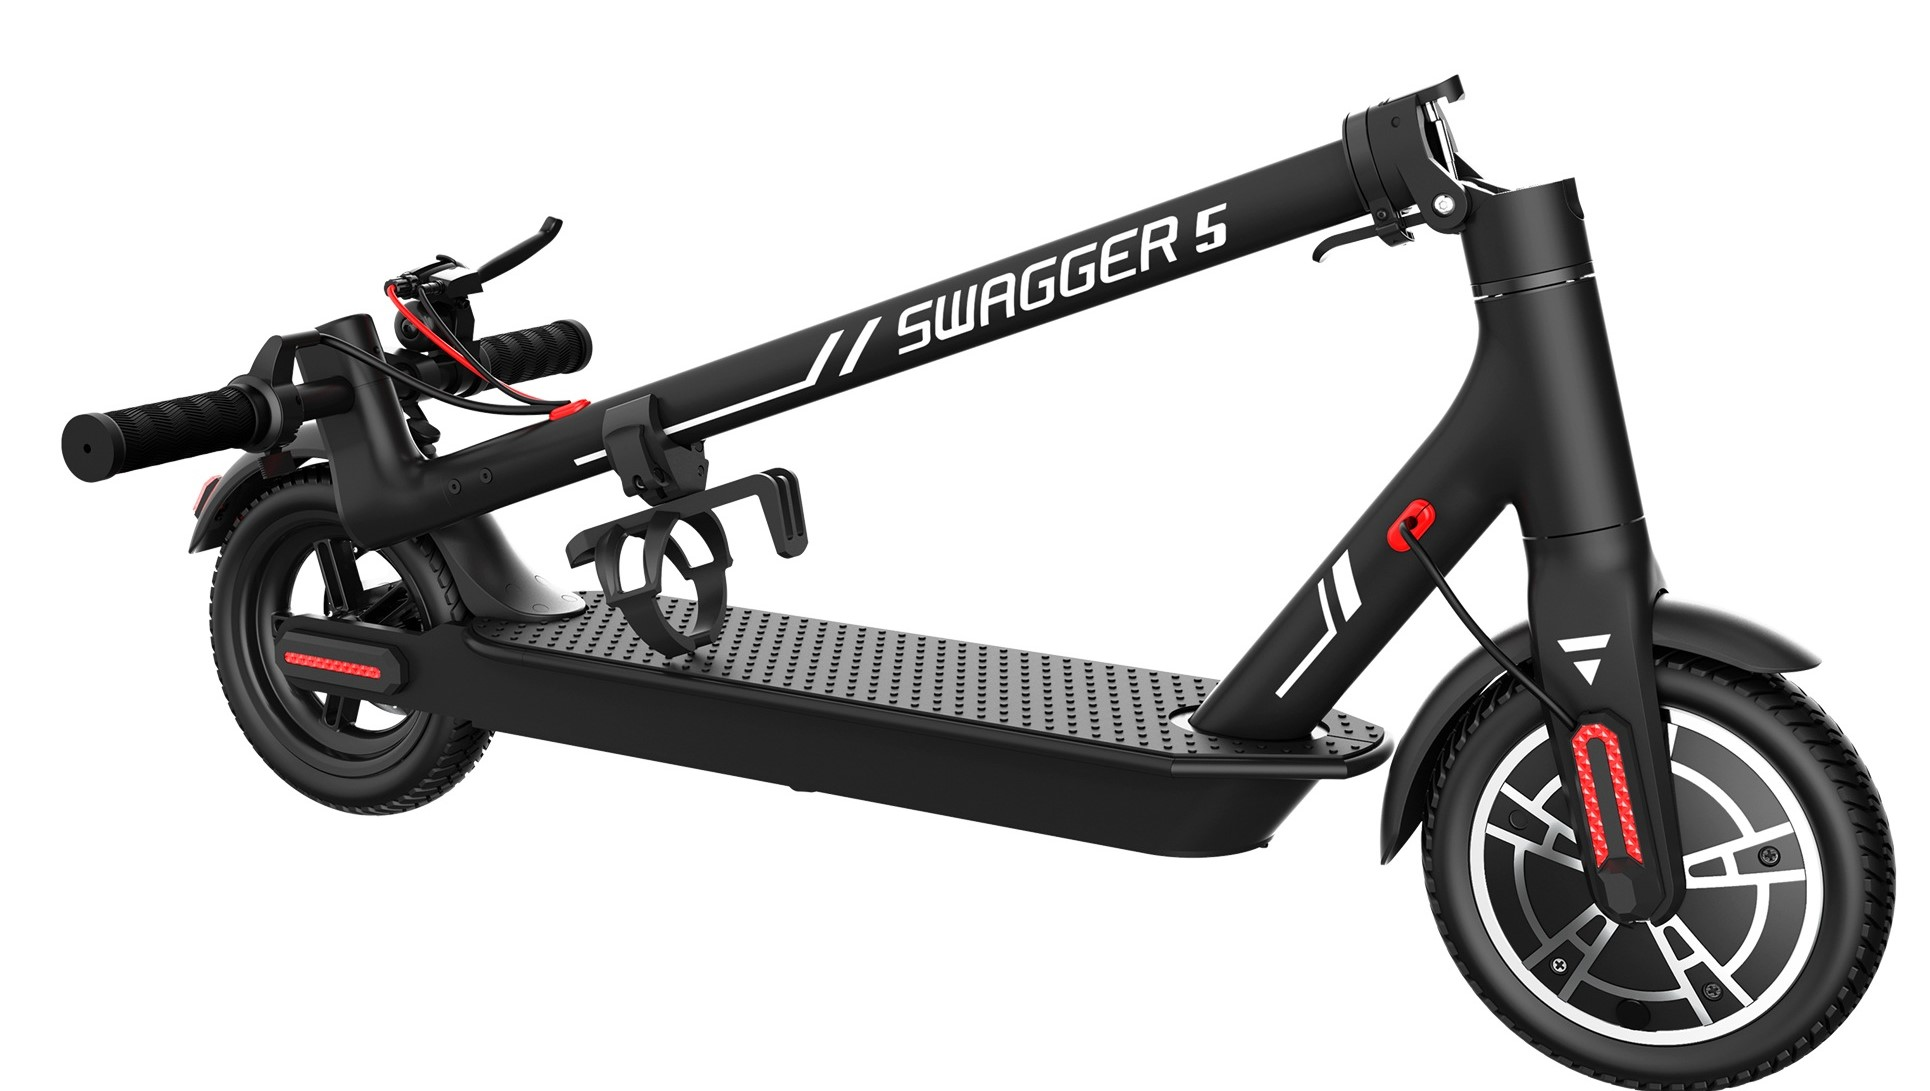 Swagger 5 Boost folded scooter